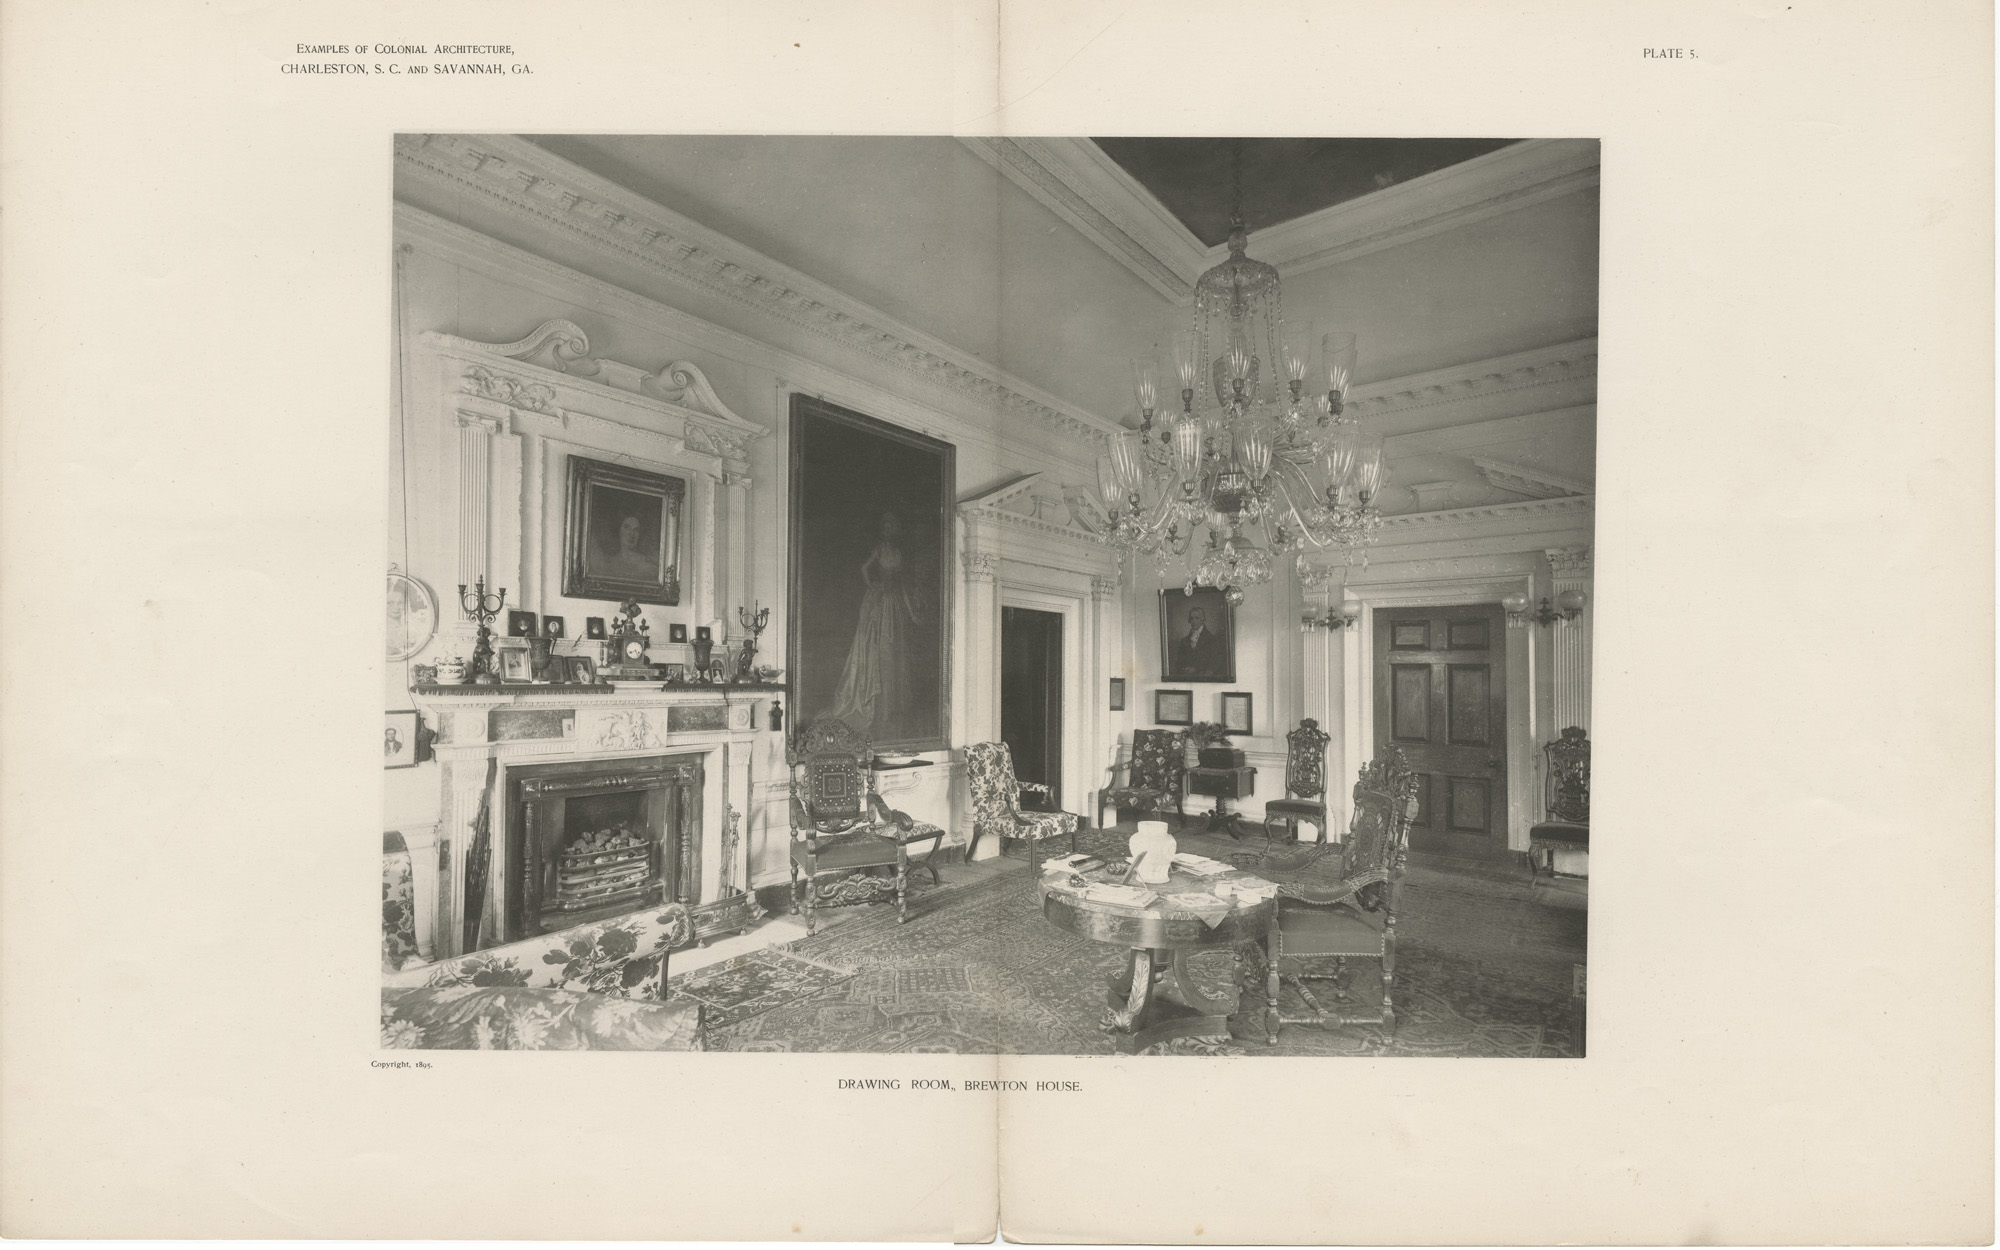 Plate 5: Drawing Room, Brewton House